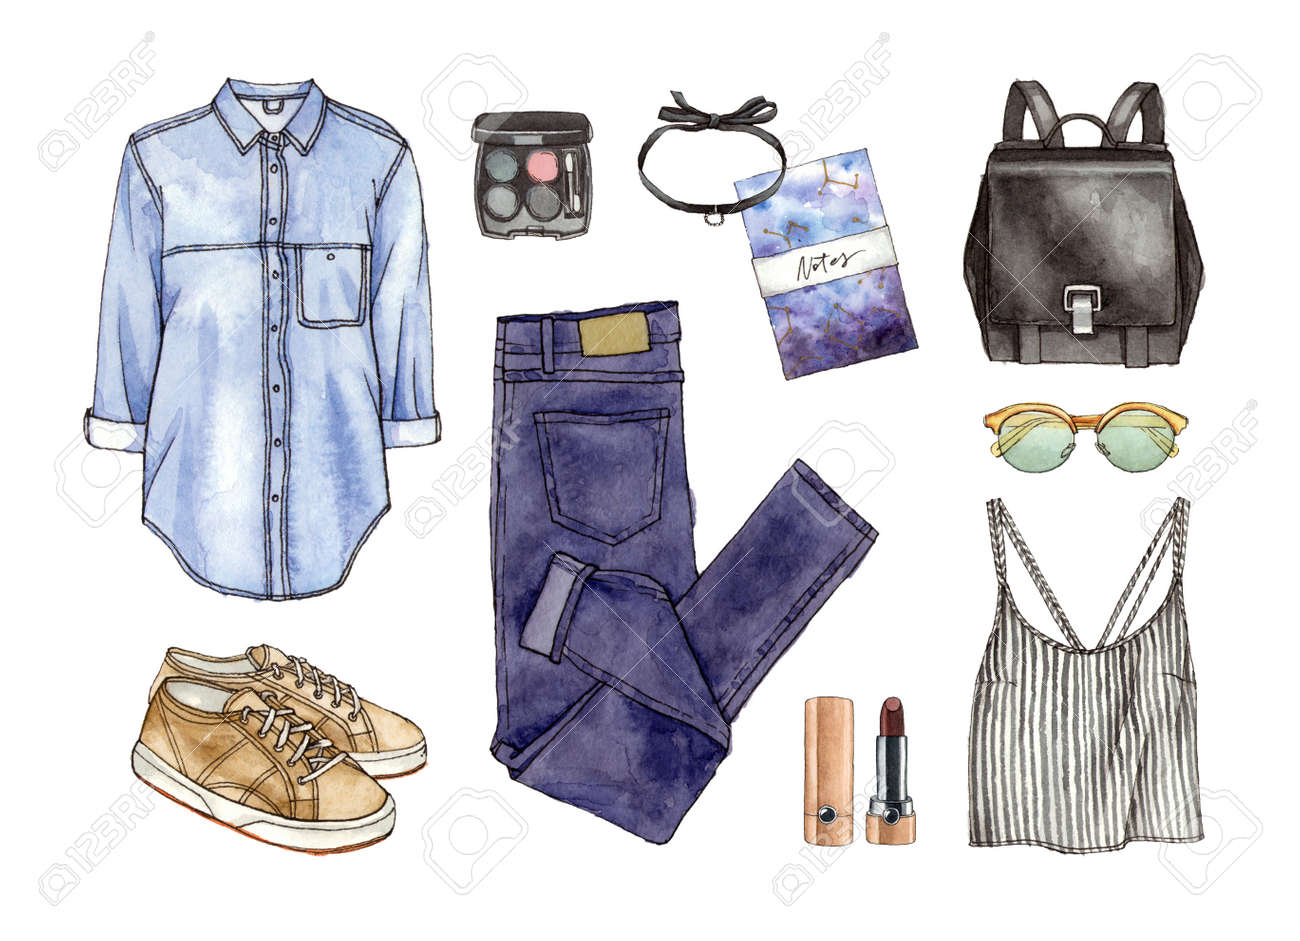 Watercolor Hand Paintiing Sketch Fashion Outfit A Set Of Clothes Stock Photo Picture And Royalty Free Image Image 86519785